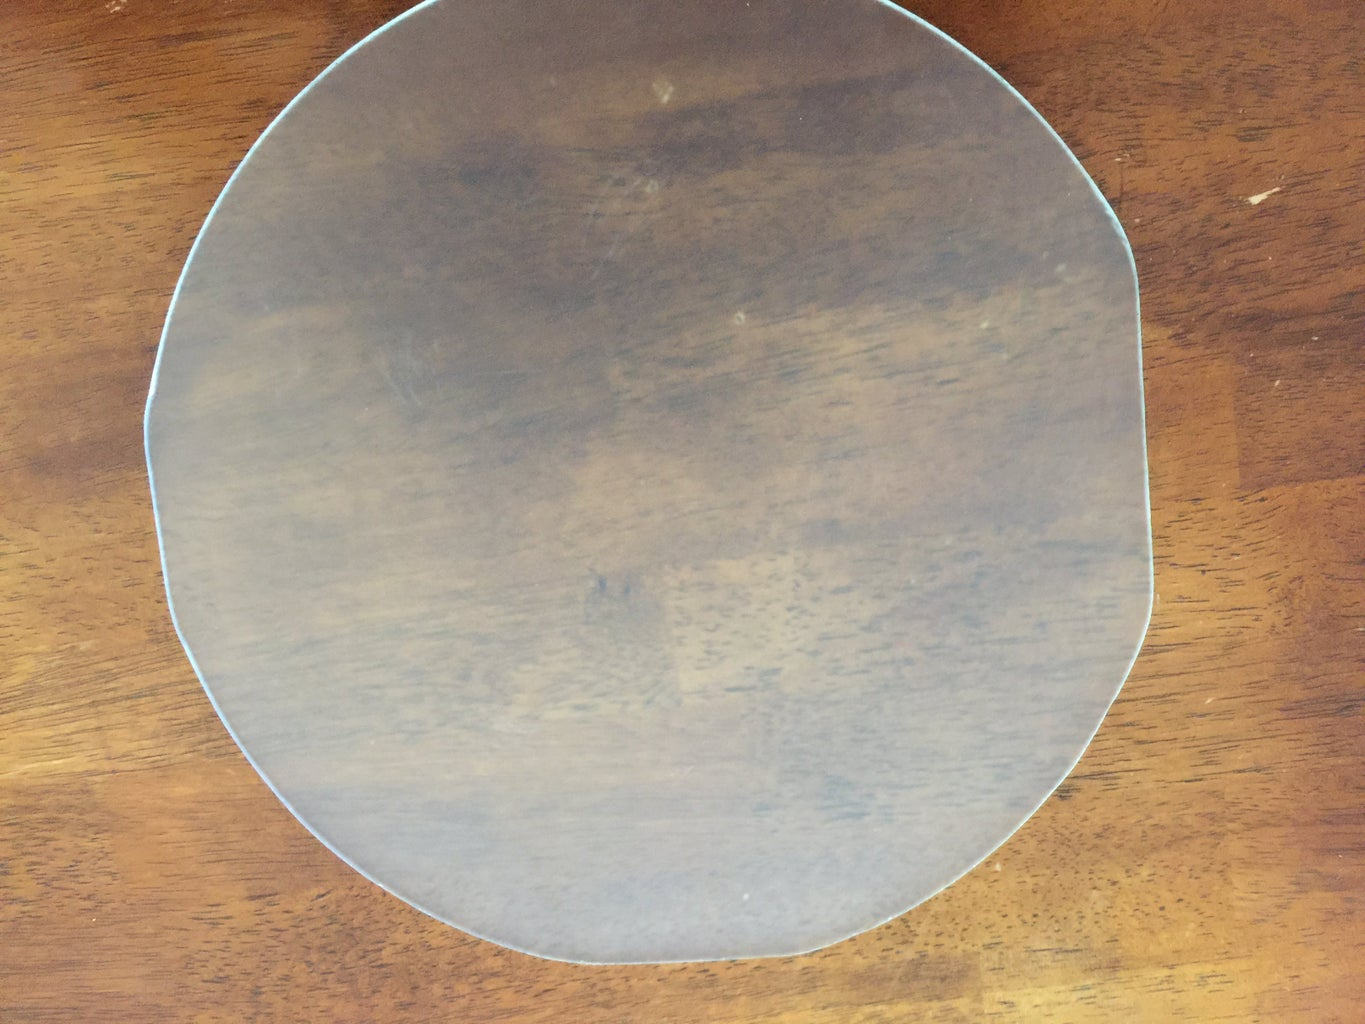 Cut and Attach a Glass Plate to the Top of the Heated Bed...